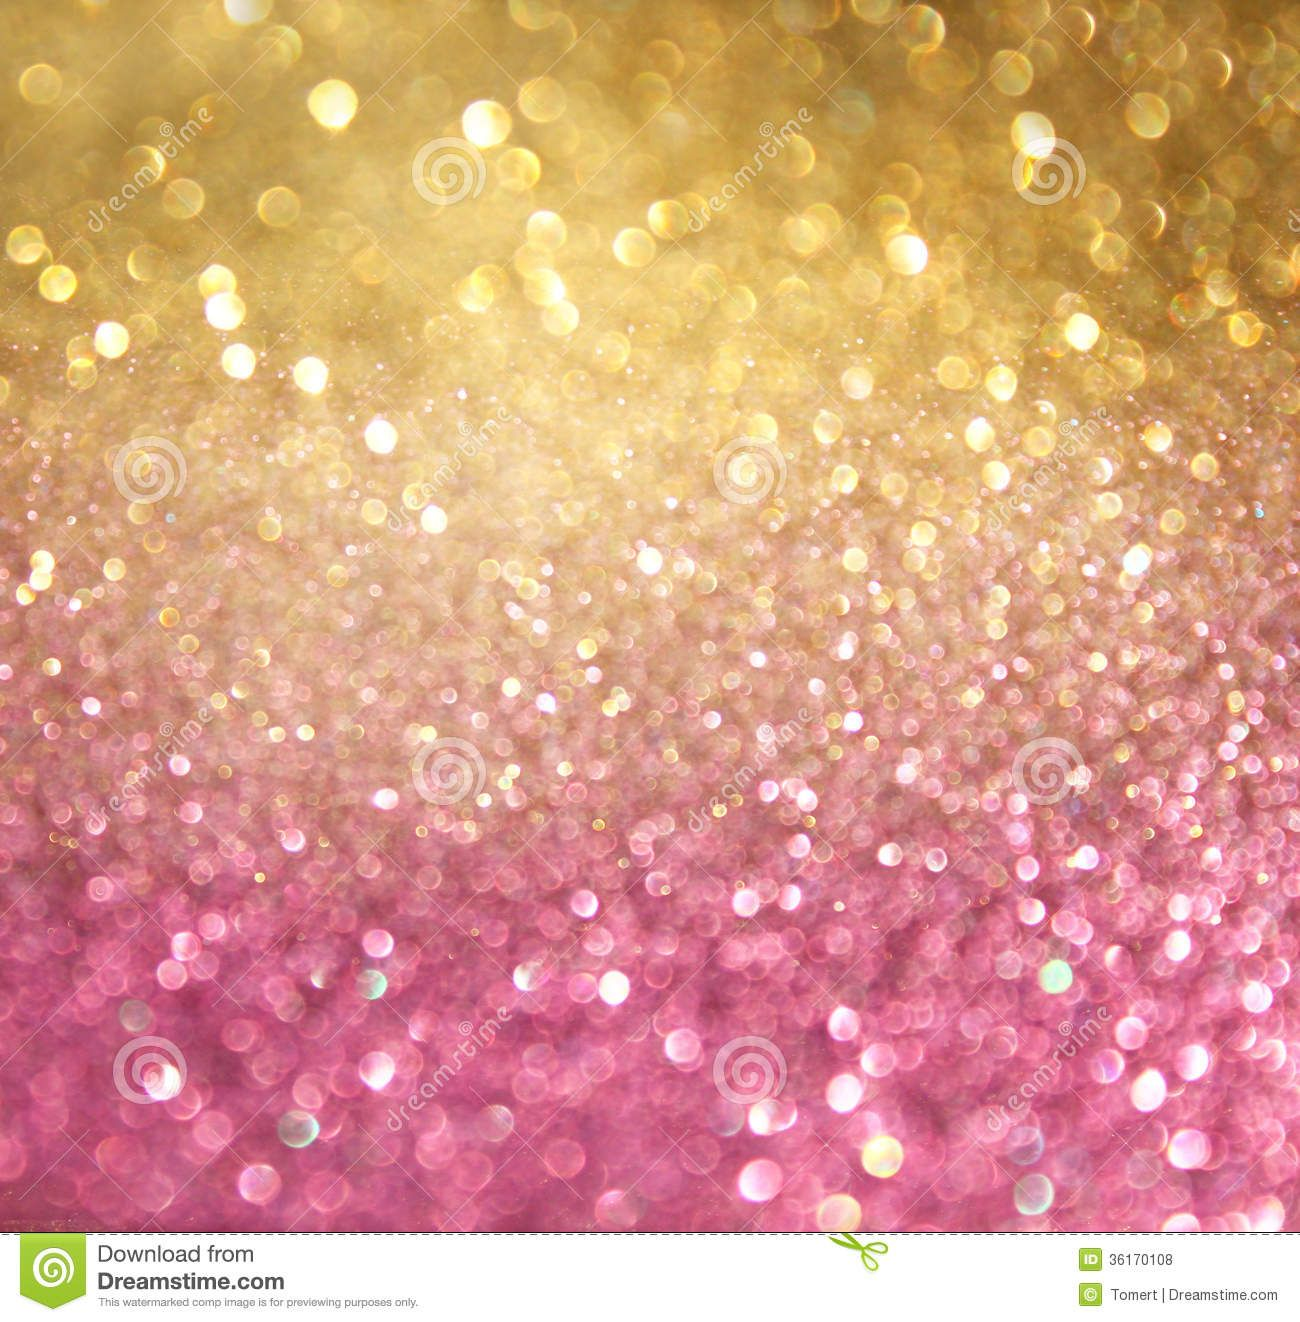 Pink and Gold Wallpaper Pink and gold wallpaper, Pink